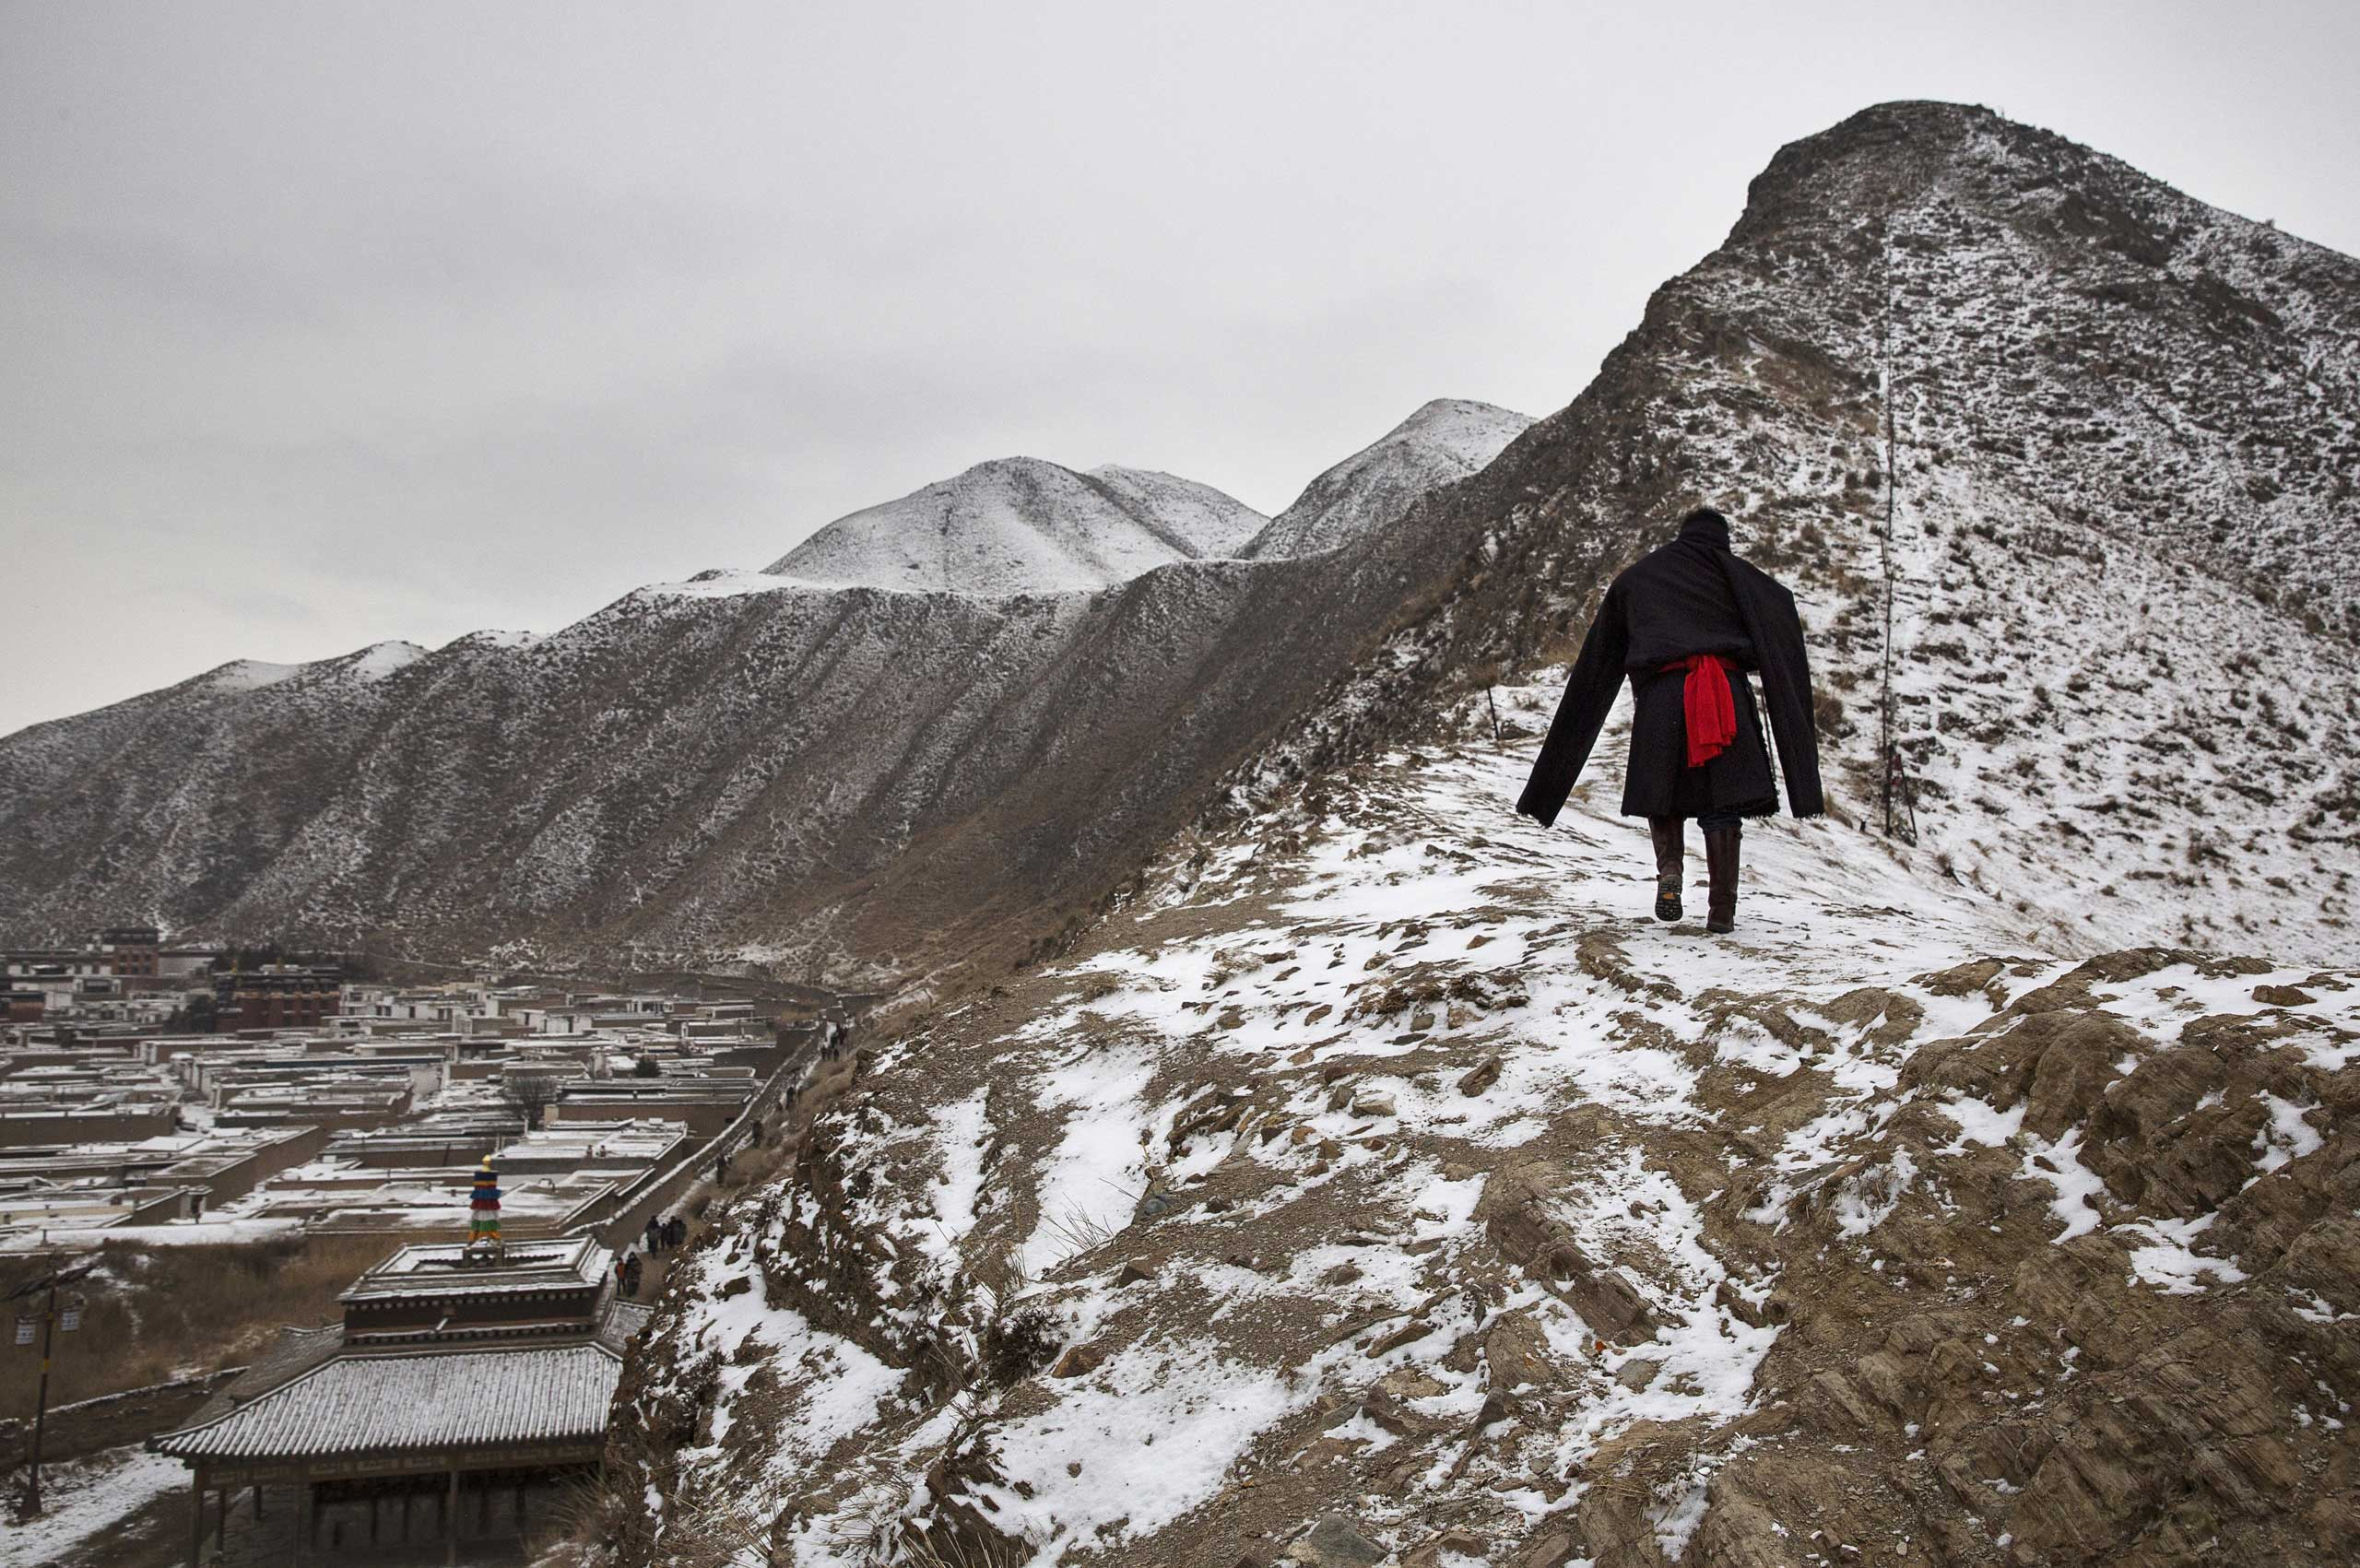 A Tibetan Buddhist man wears a traditional jacket as he walks on a hillside during  Monlam or the Great Prayer rituals on March 4, 2015 overlooking the Labrang Monastery.